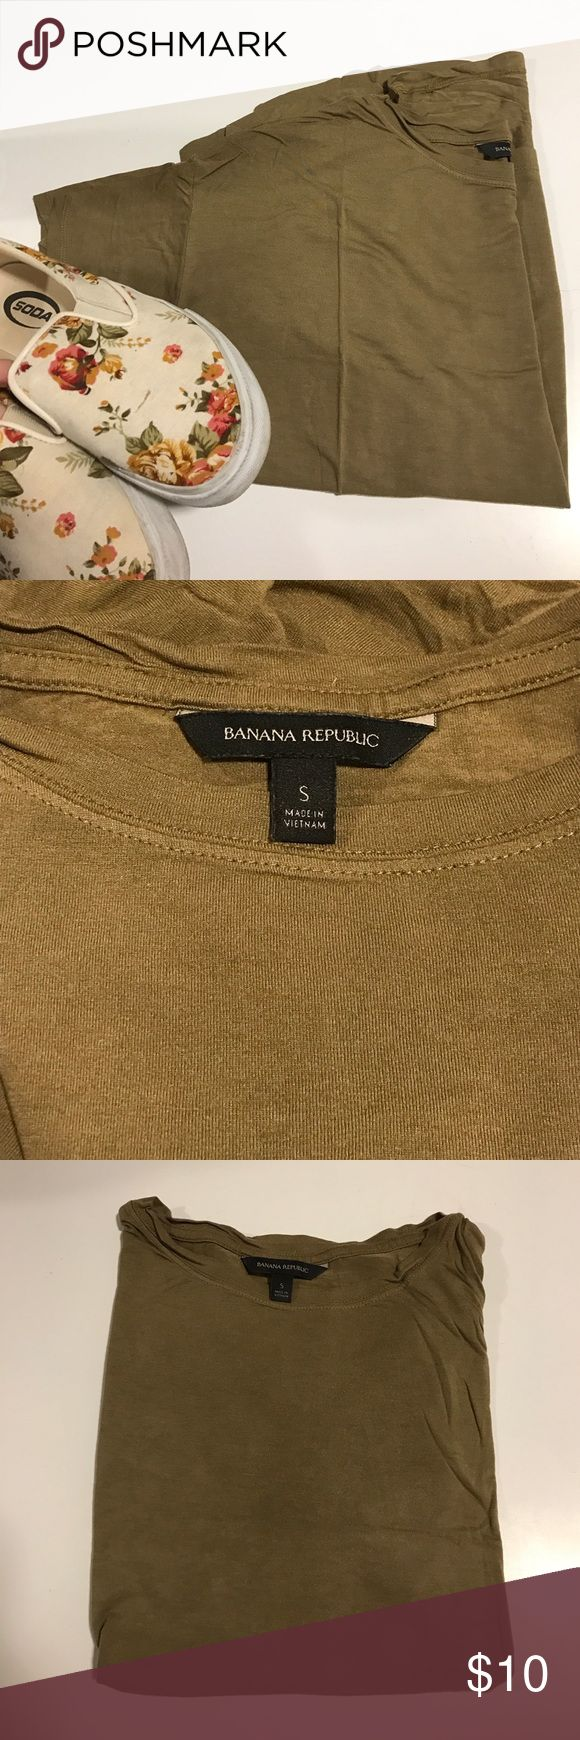 Banana Republic Olive T-Shirt Olive green T-shirt from Banana Republic, size small. Worn only a couple times, perfect condition. Also available in maroon - see other posting. Banana Republic Tops Tees - Short Sleeve